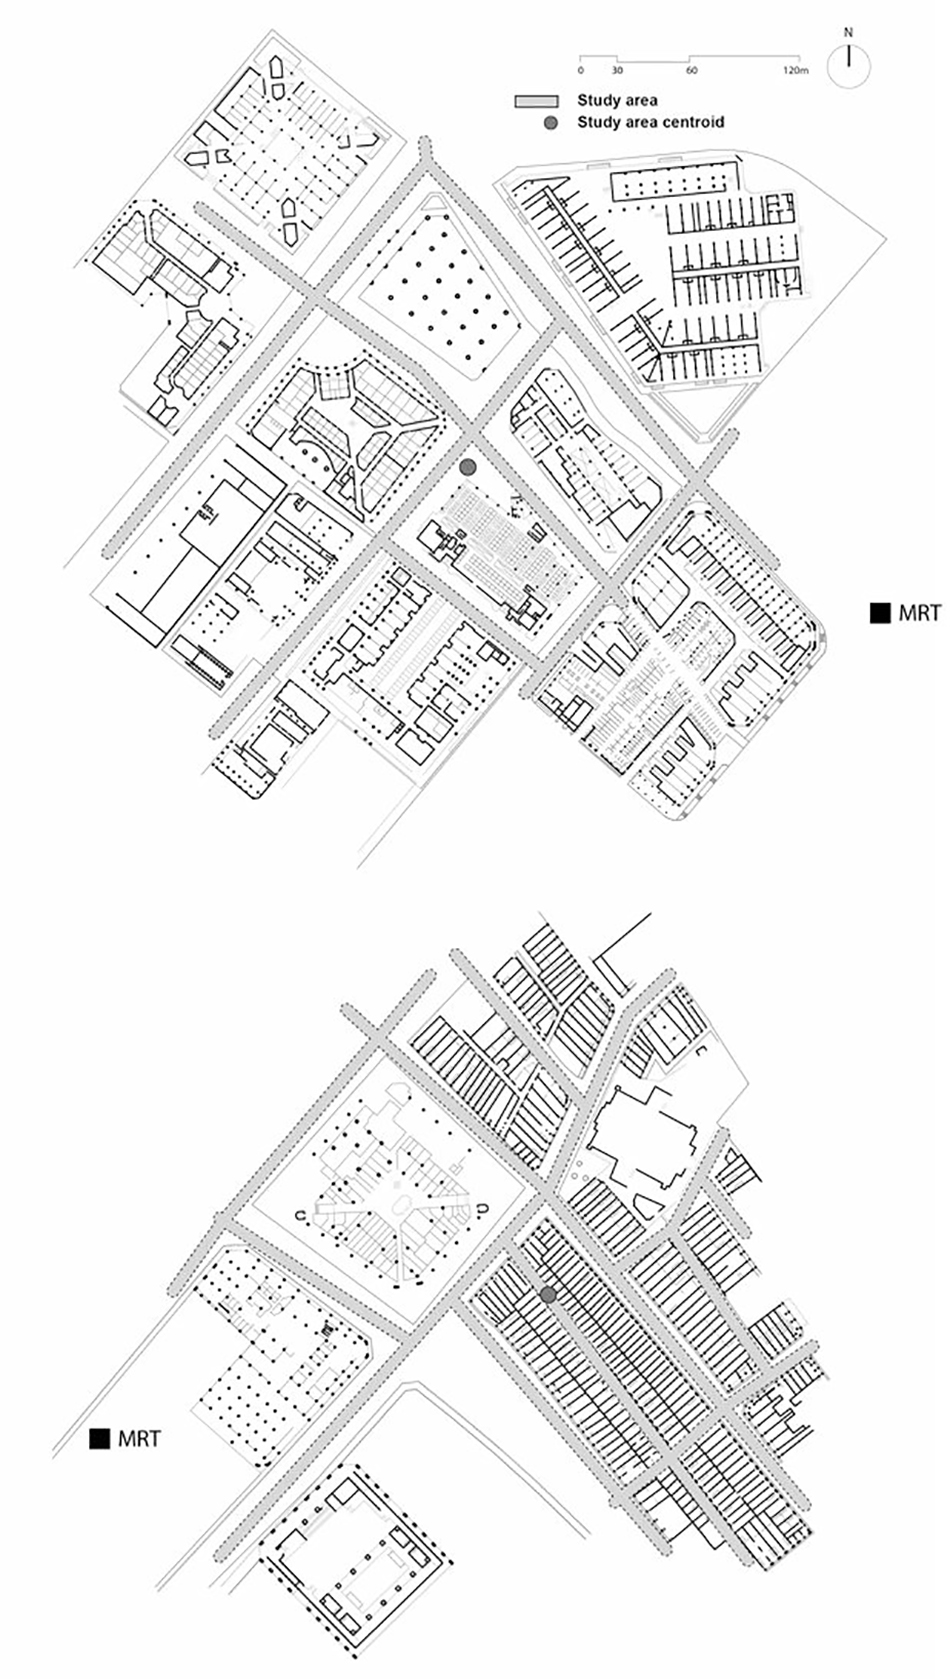 Evidence Based Design Journal Urban Network Analysis Diagram Of A Architecture In Multistory Building Fig05 Singapore Case Studiestop Albert Centre And Bottom Haji Lane District Image By City Form Lab